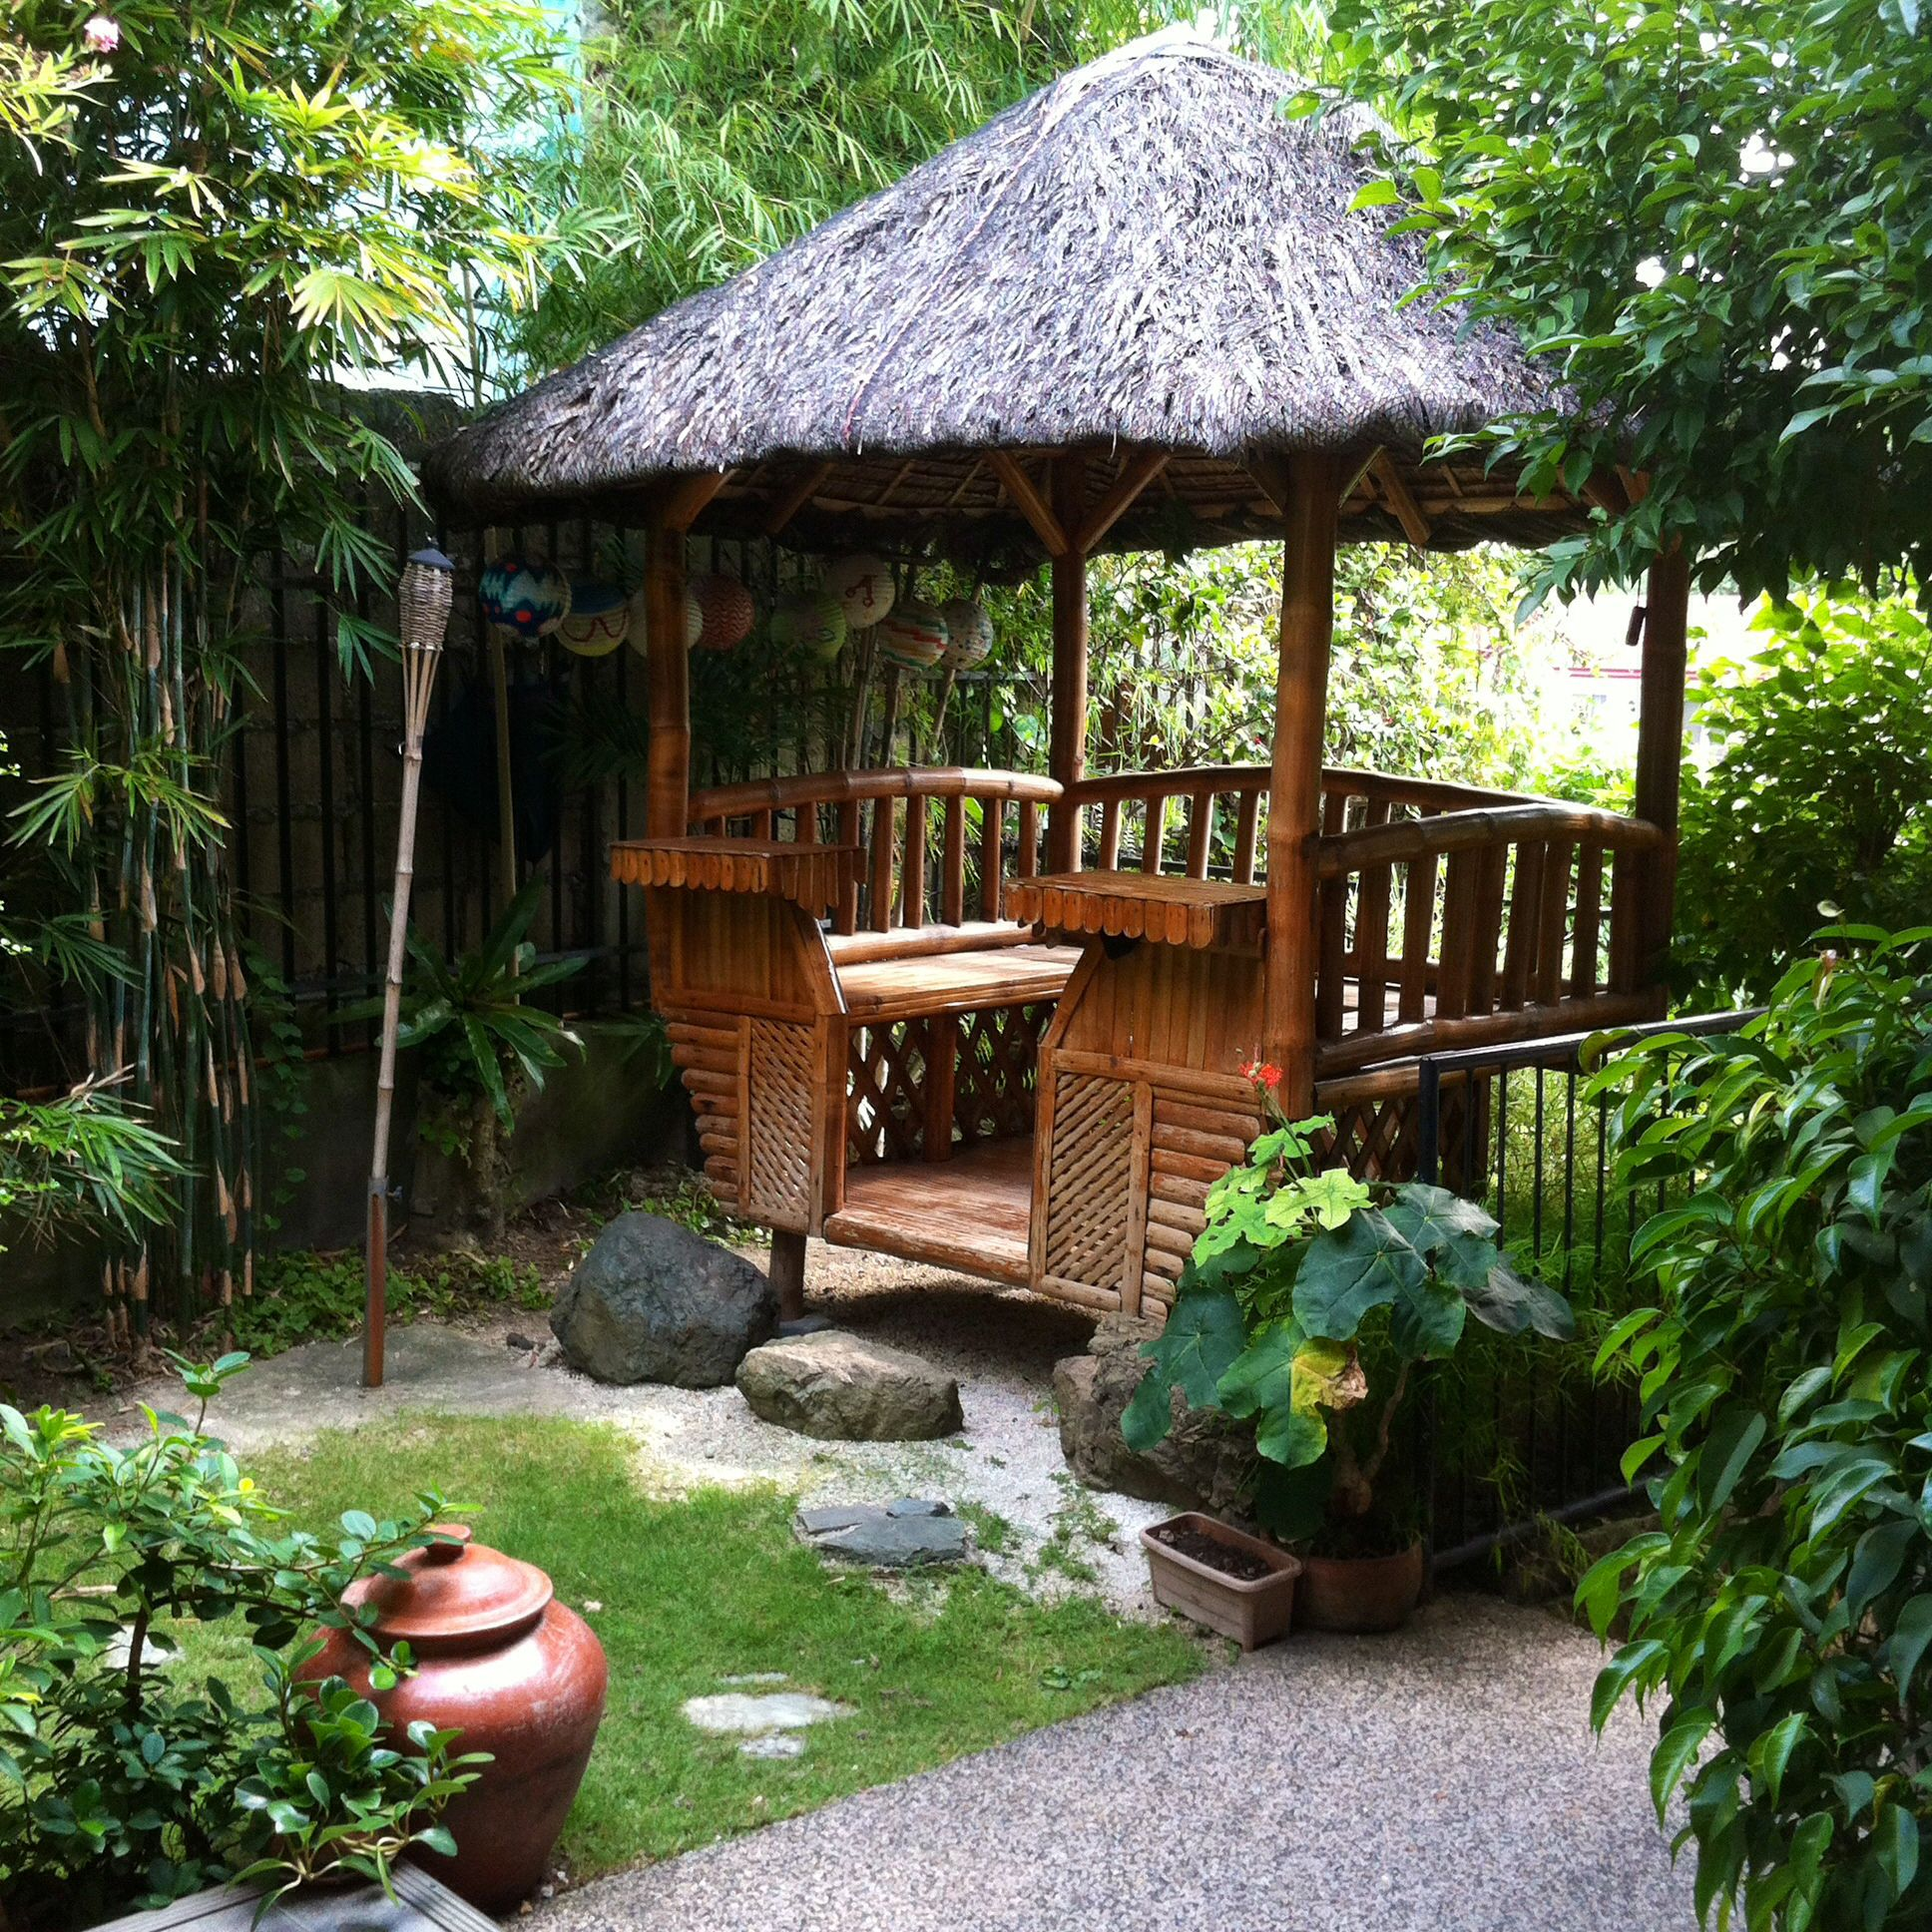 Our nipa hut in the garden love chillin in there